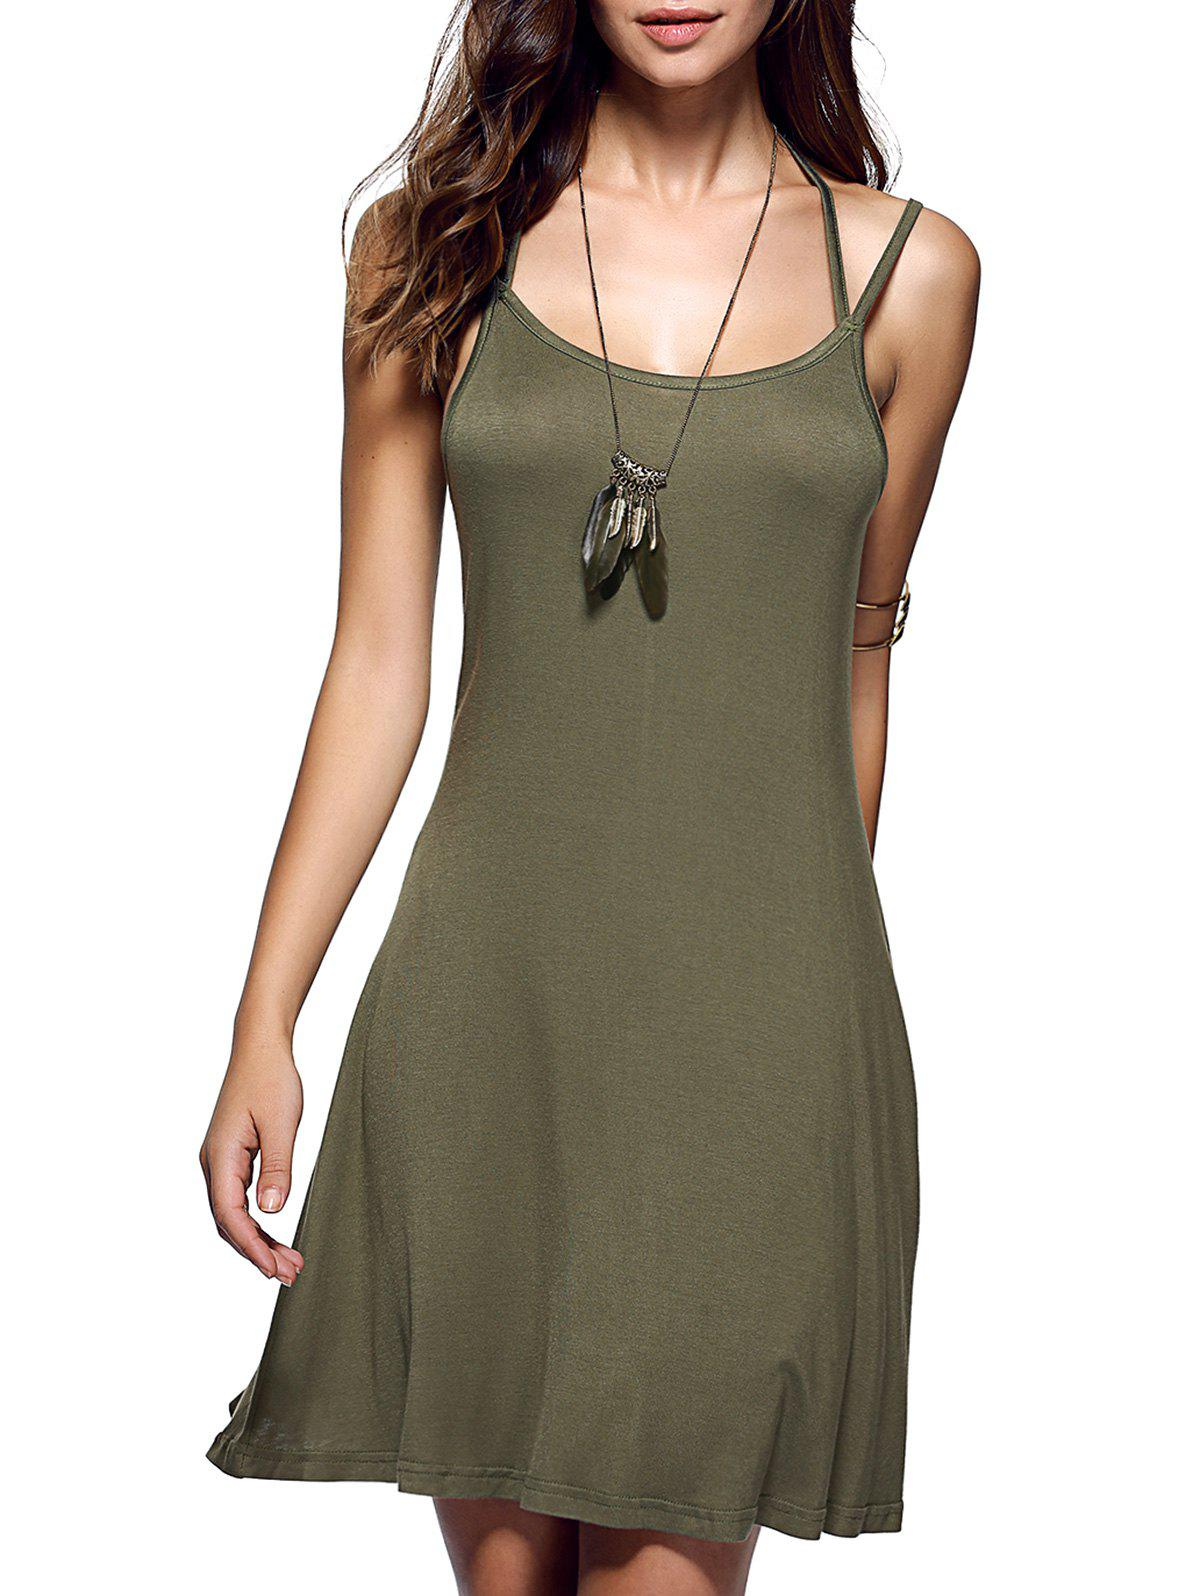 Hot Spaghetti Strap Backless Casual Short Summer Dress